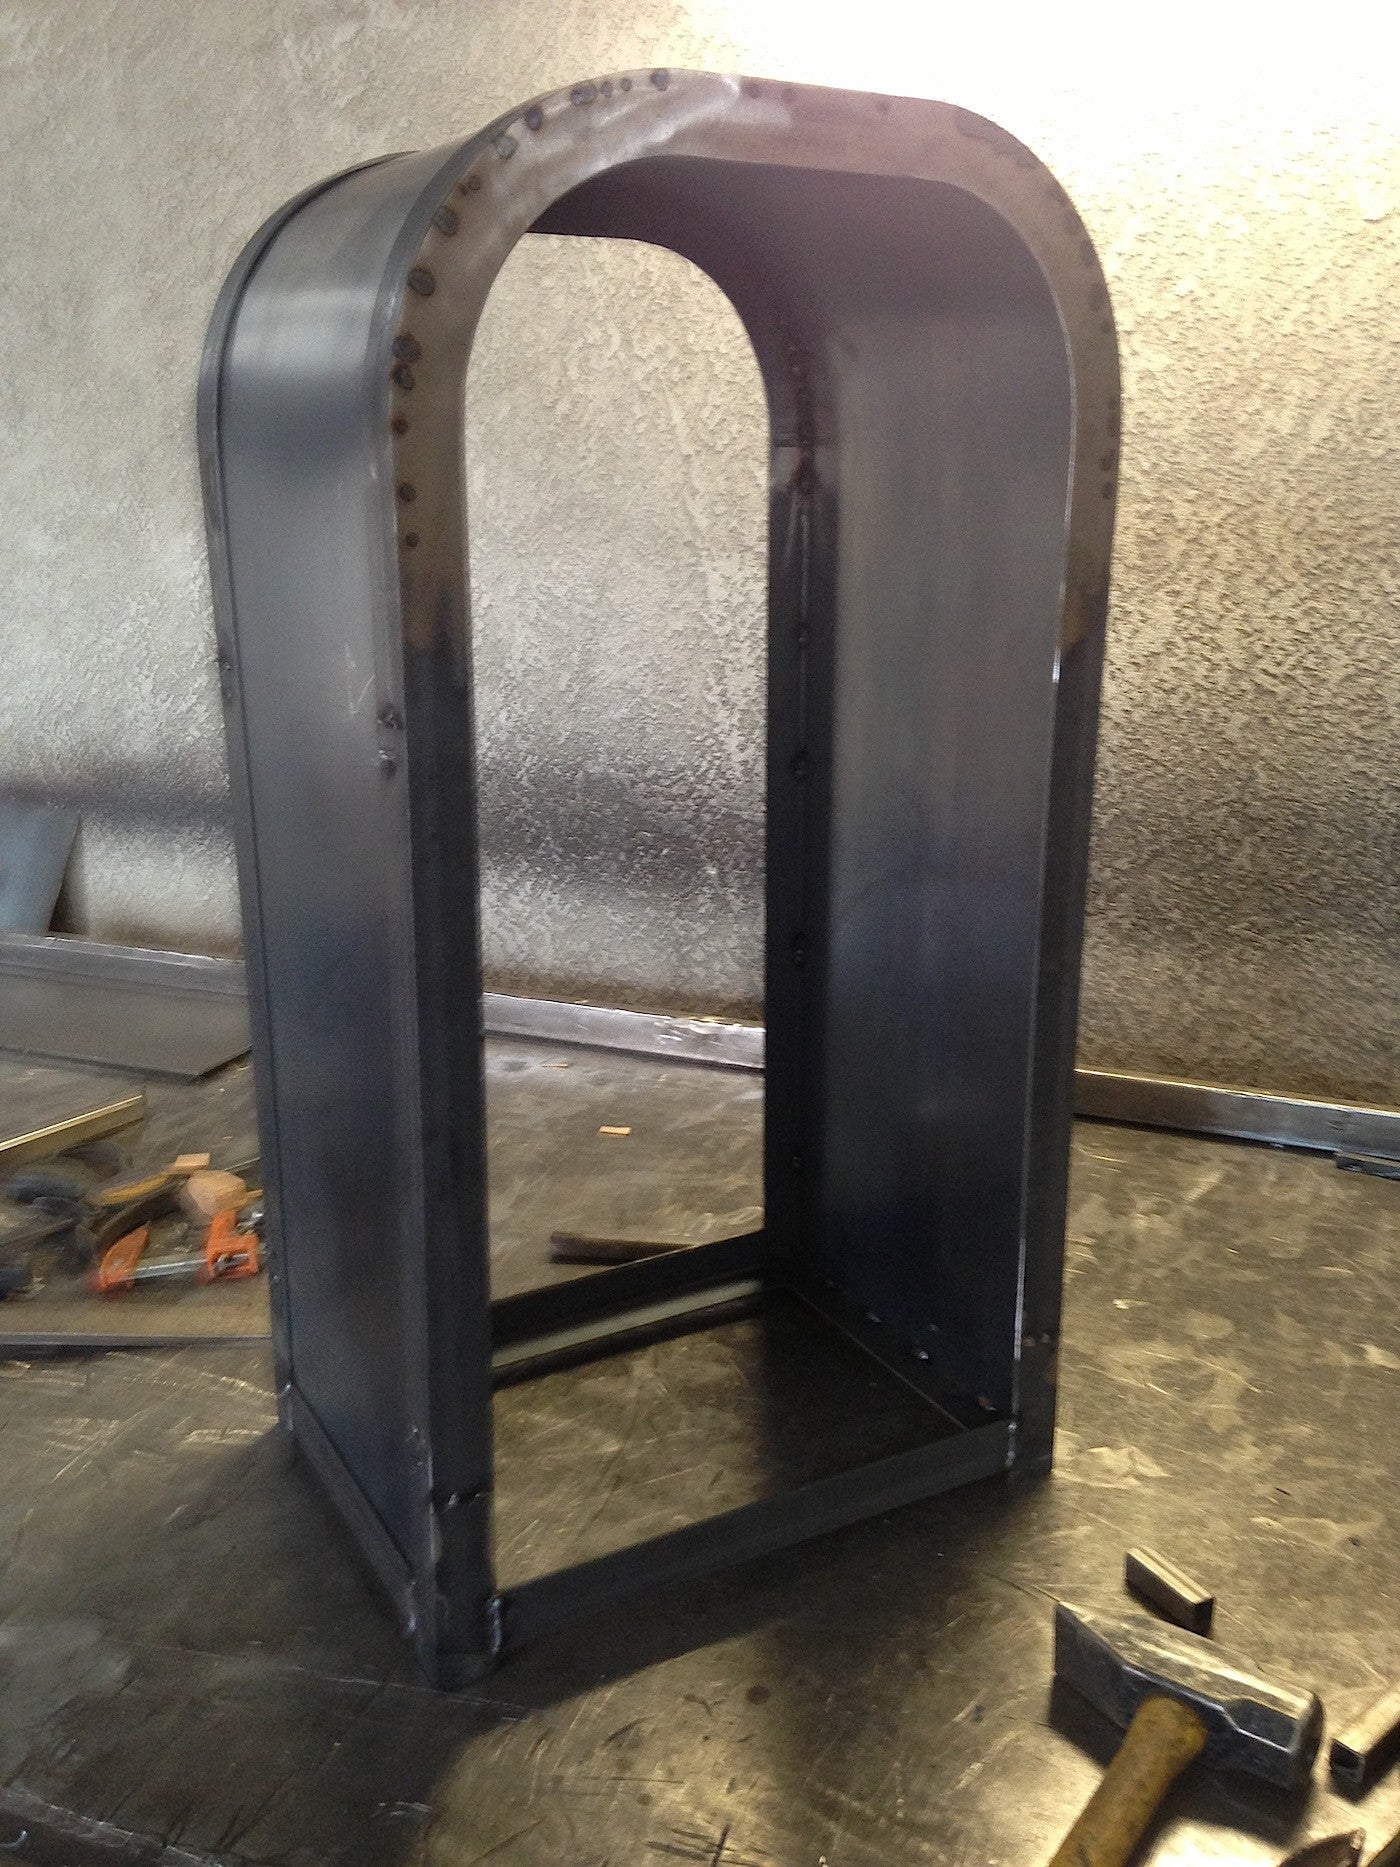 building the metal frame of the theme park inspired trash can